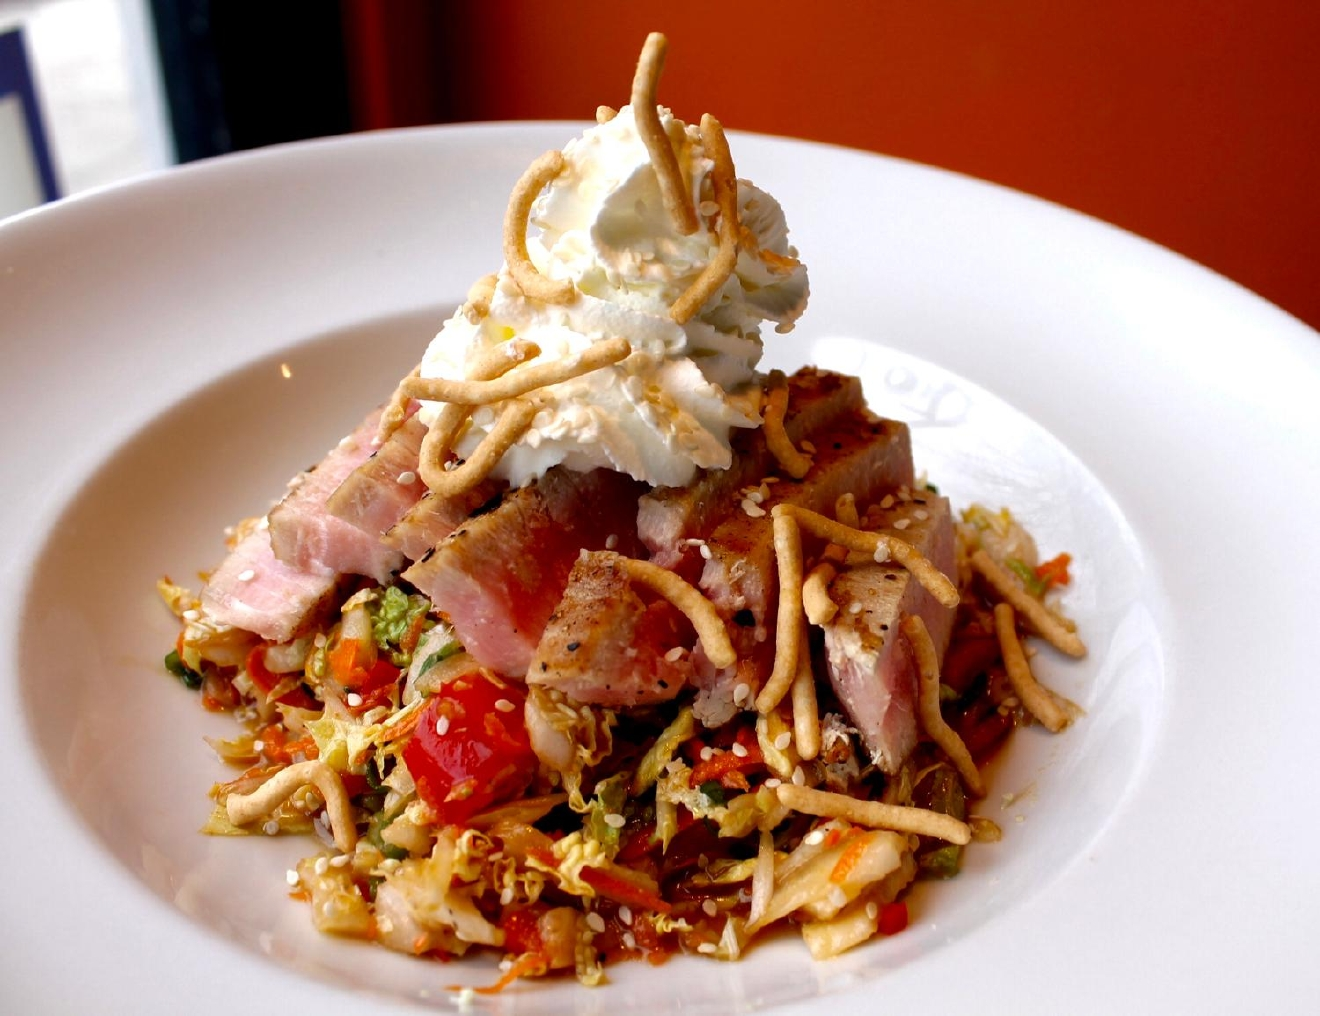 Seared Ahi Tuna : Aerated wasabi cream, Napa cabbage, carrots, red bell peppers, scallions, ginger soy dressing, and crispy chow mein noodles / Image: Rose Brewington / Published: 3.12.17